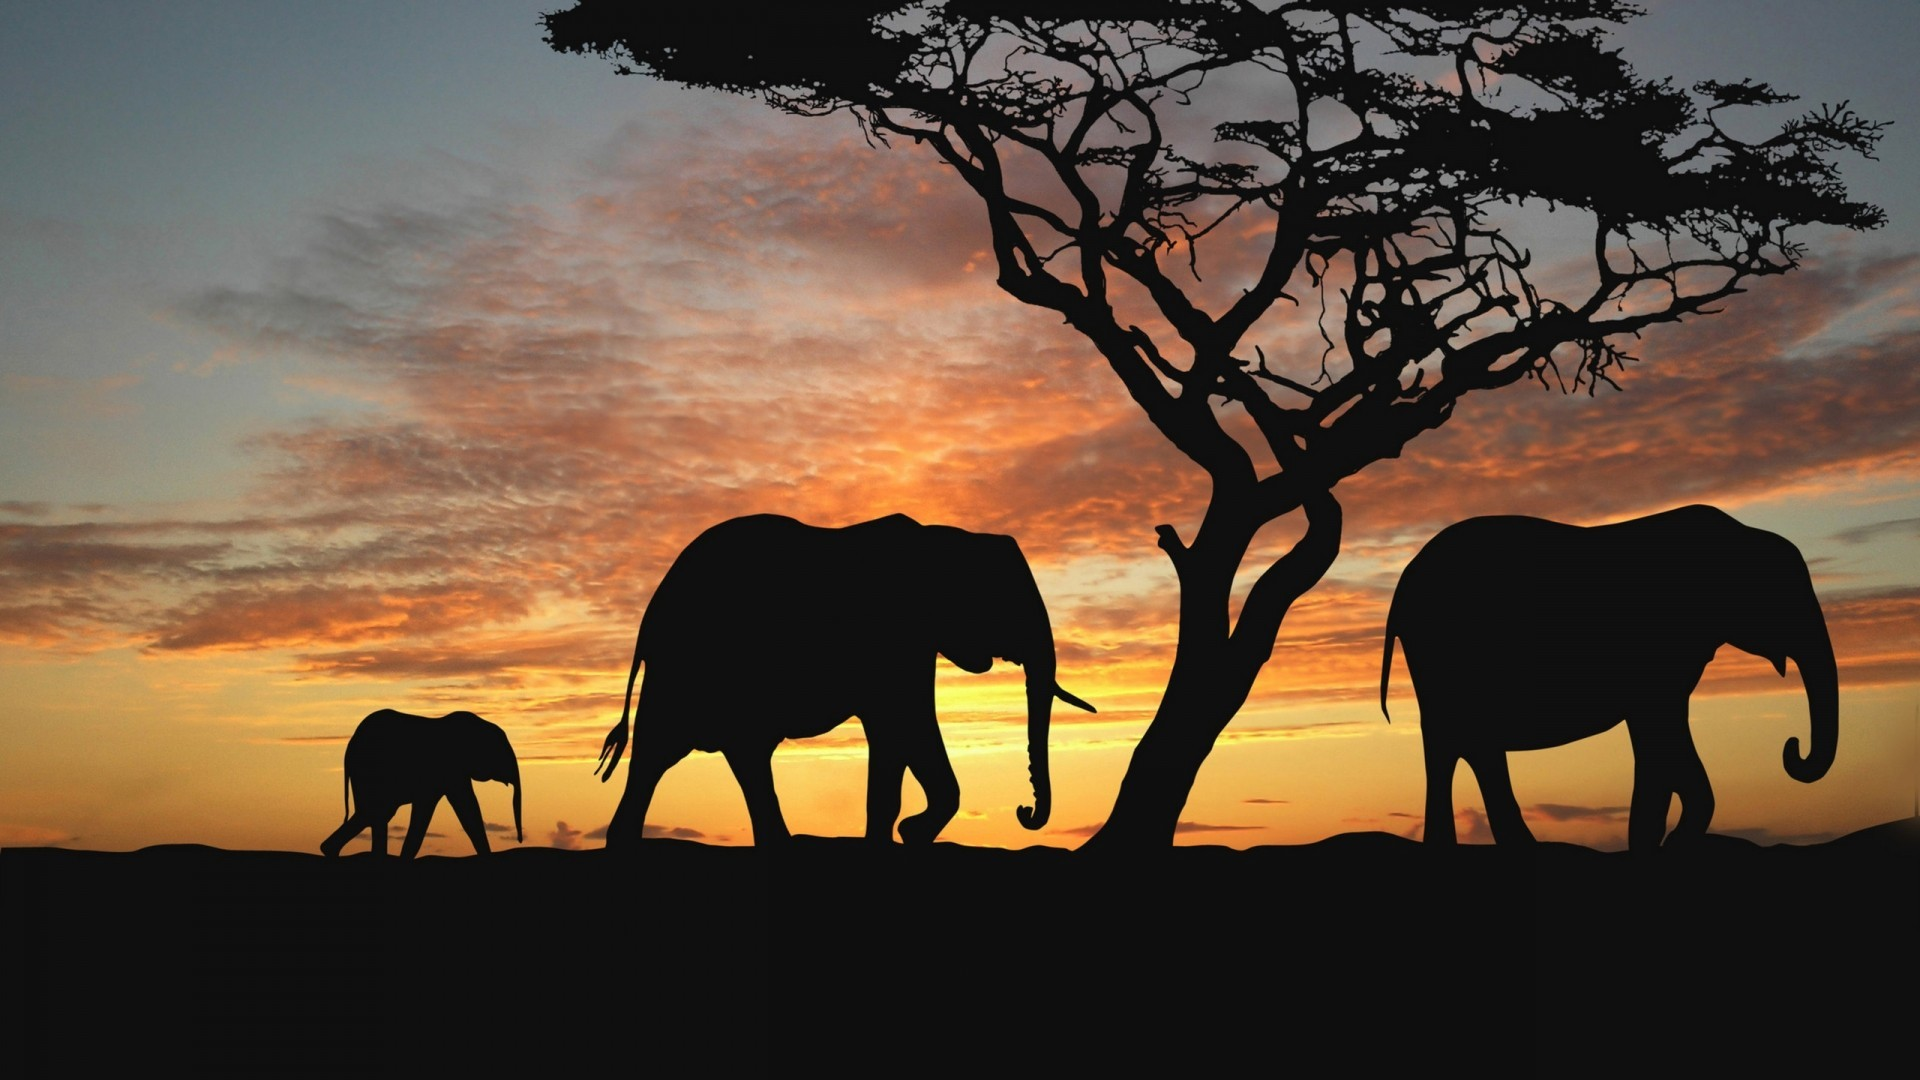 sunset Trees Animals silhouettes HD Wallpaper